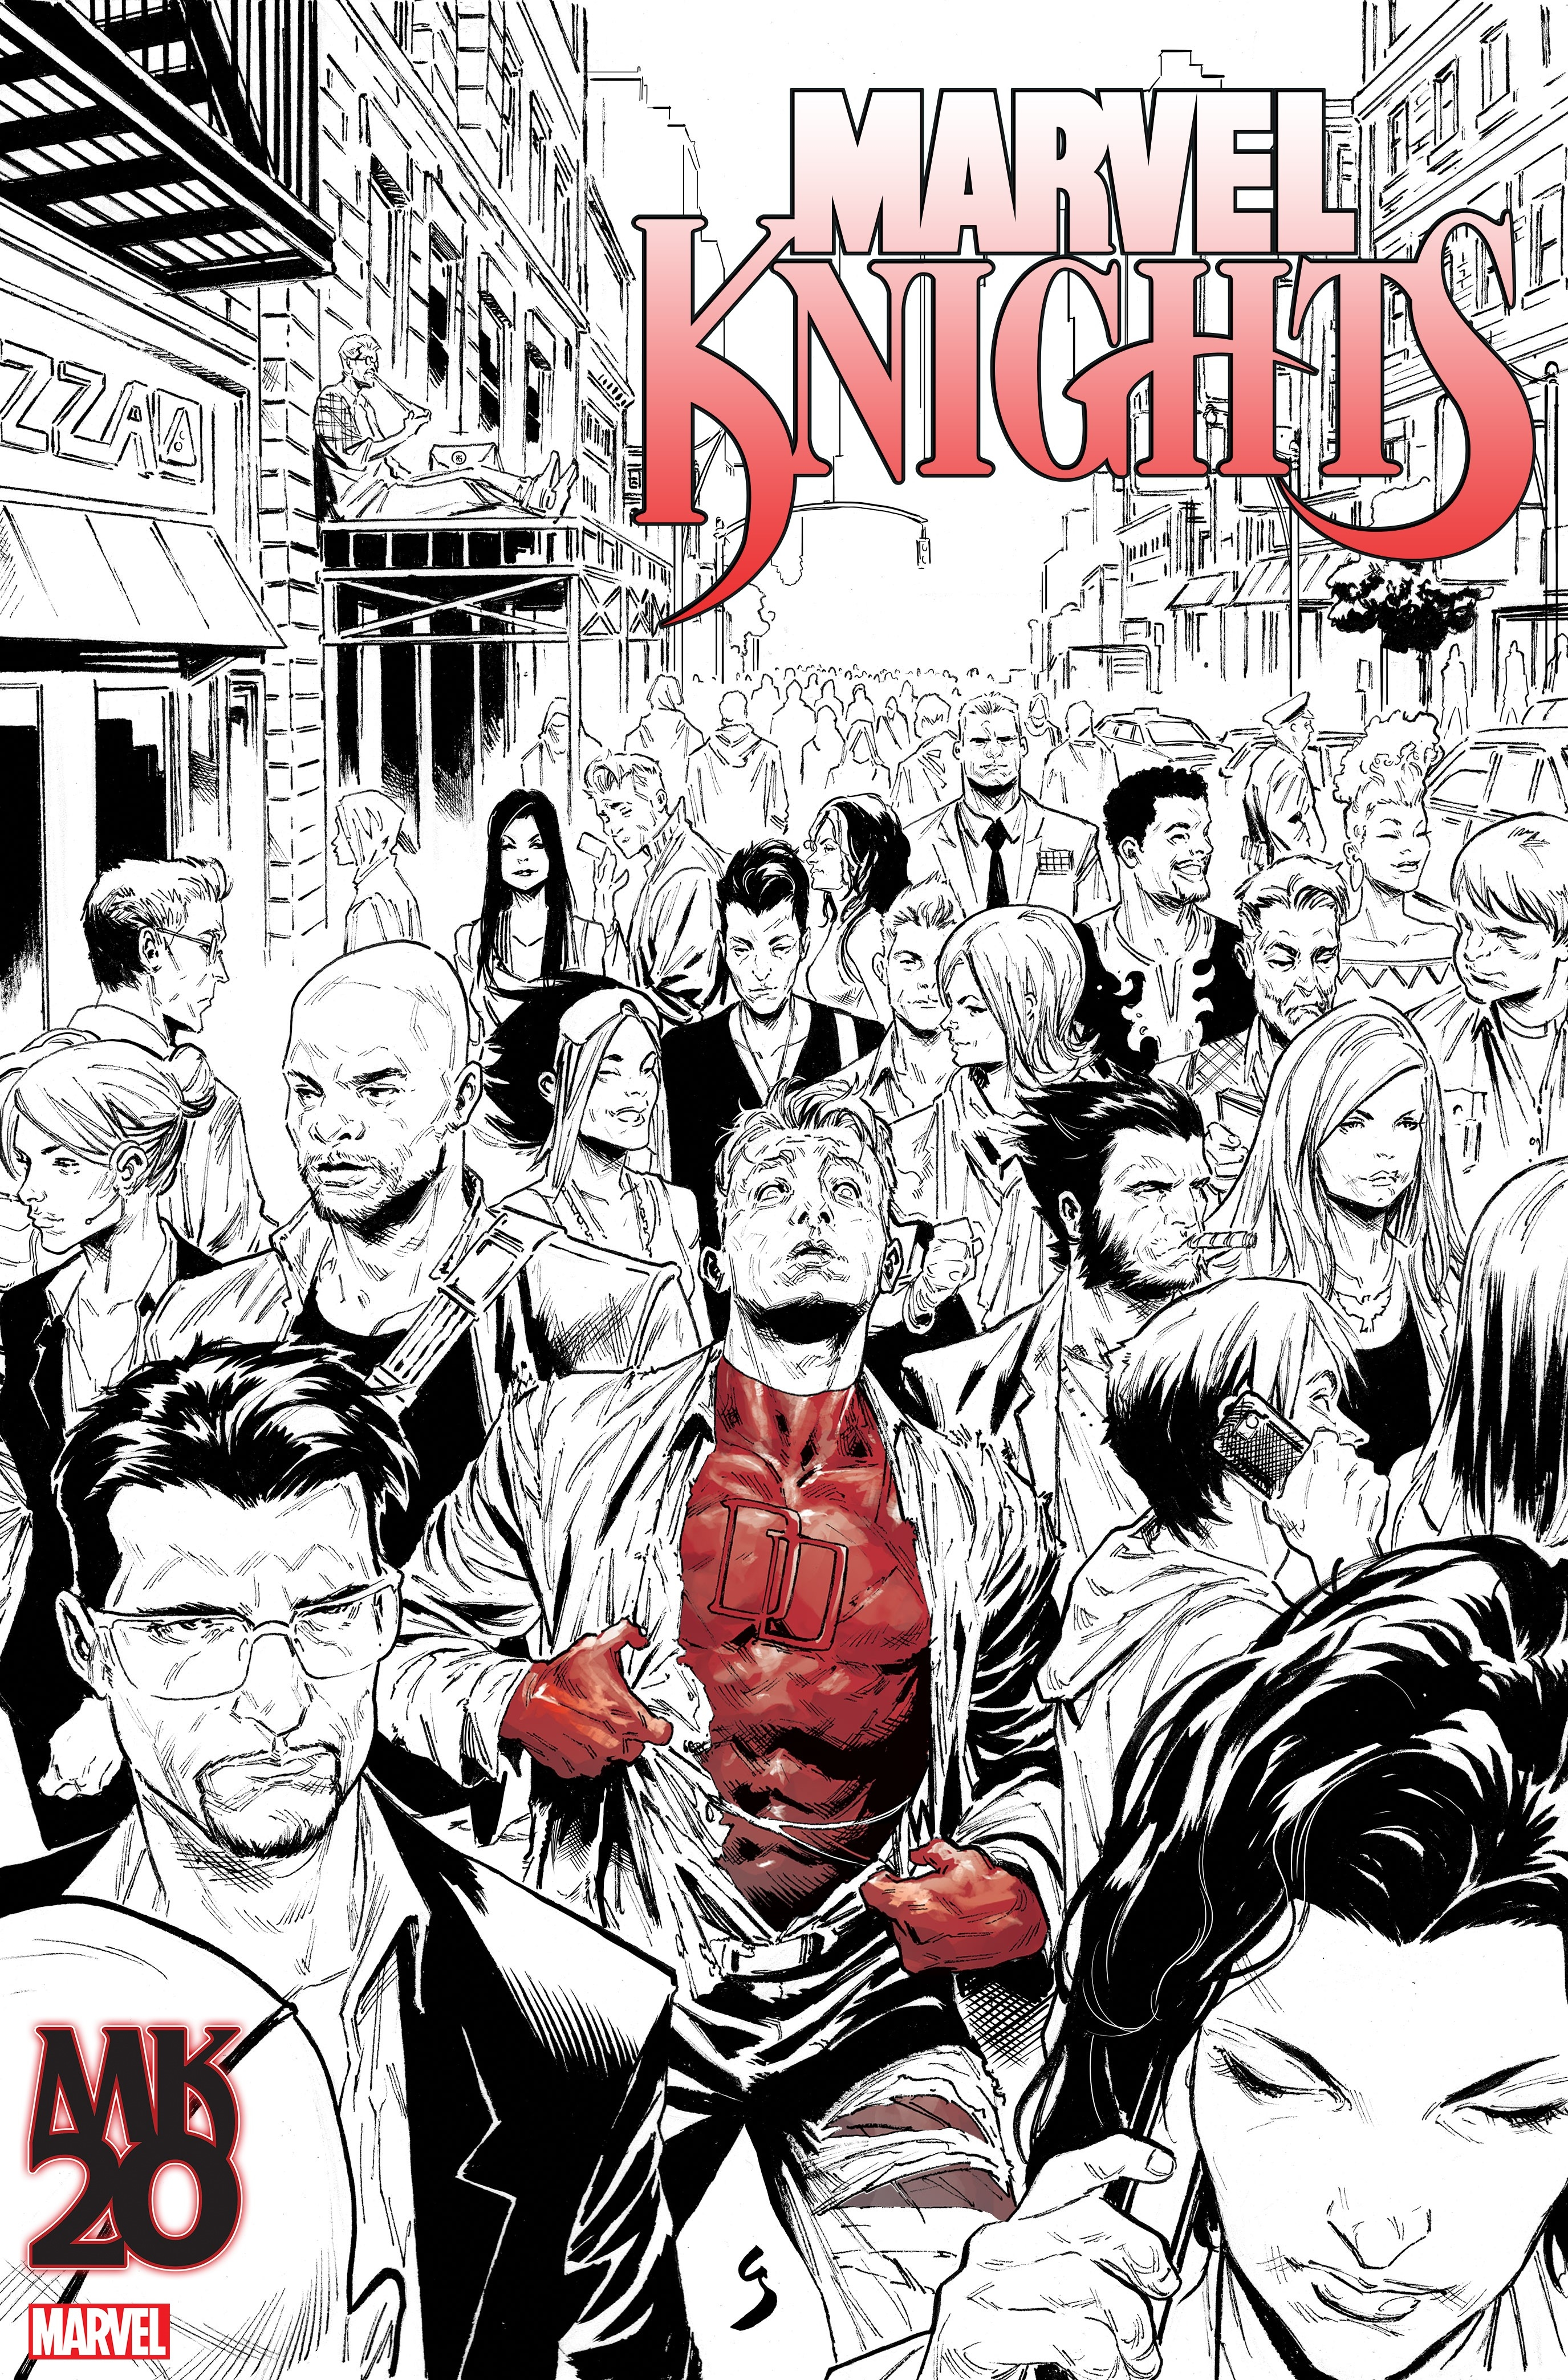 LCSD 2018 MARVEL KNIGHTS 20TH #1 (OF 6) VAR